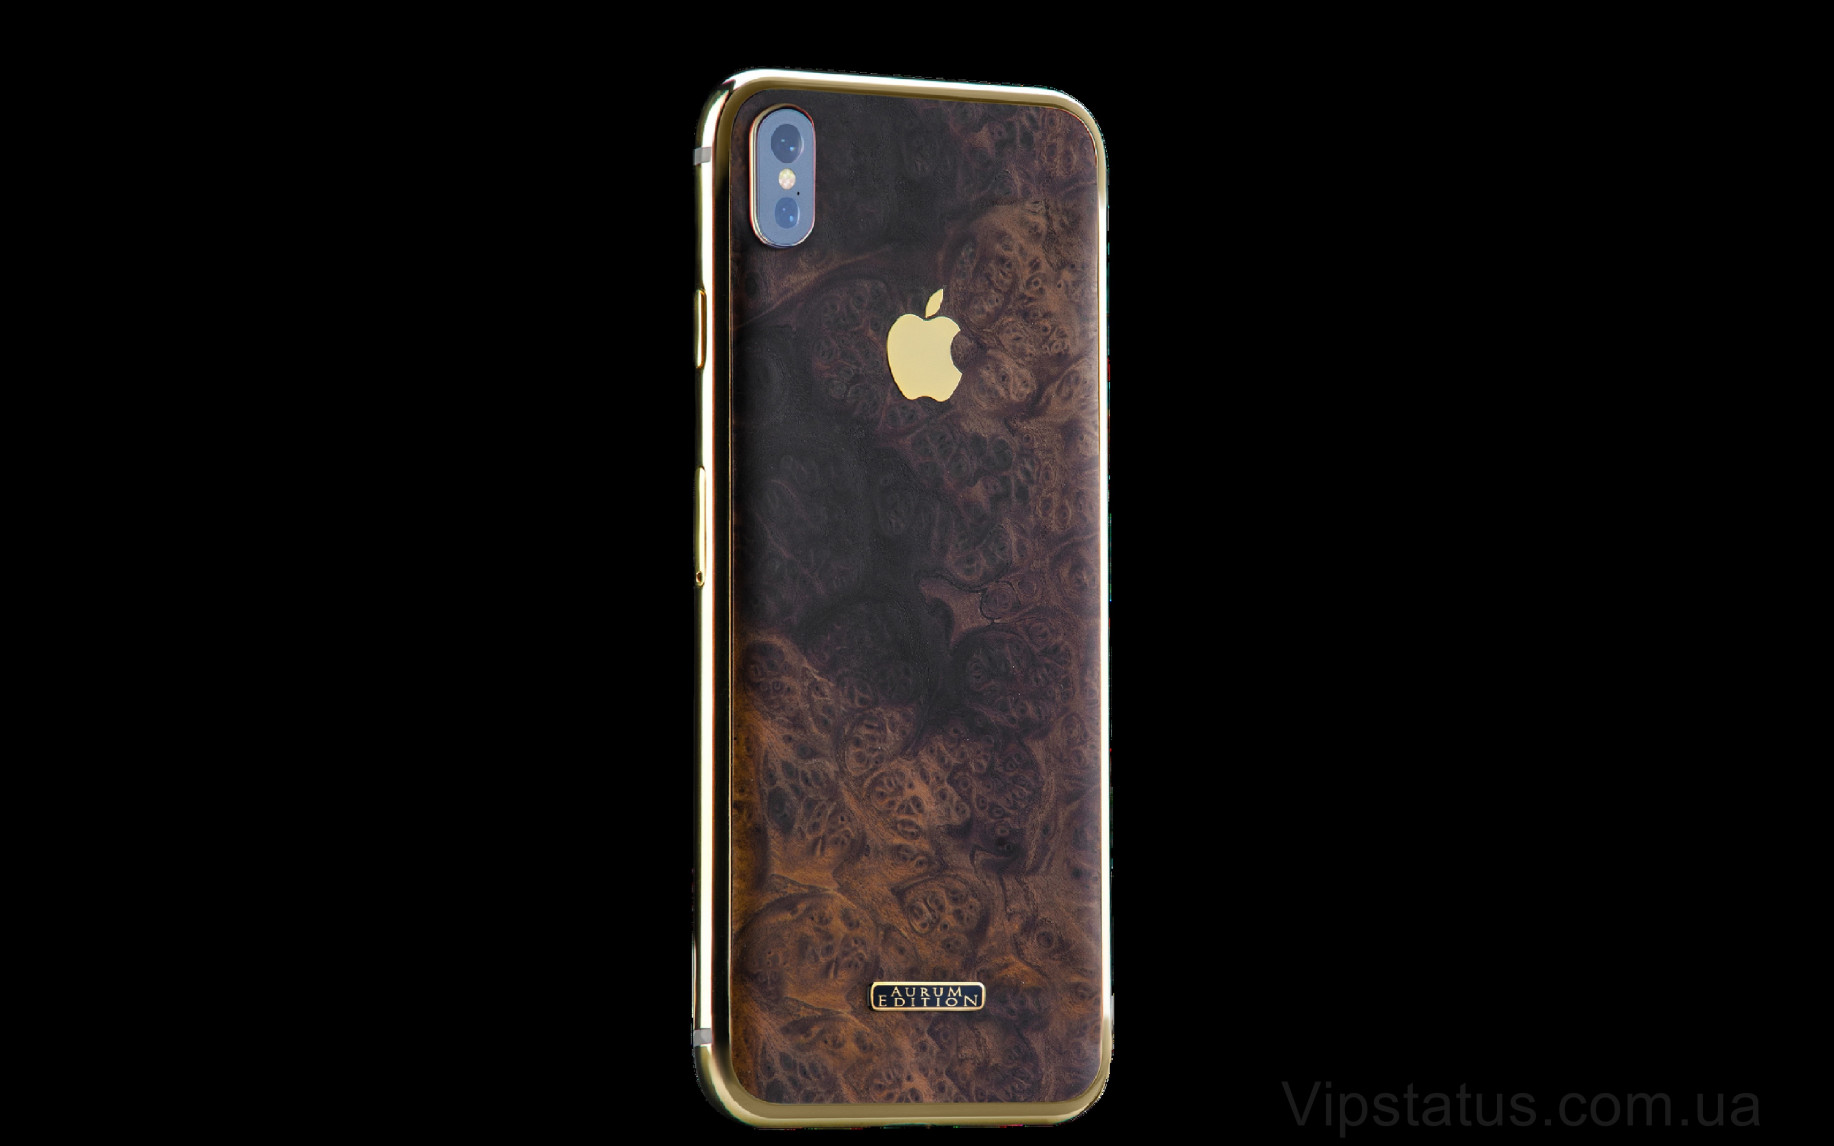 Элитный Gold Duke IPHONE XS 512 GB Gold Duke IPHONE XS 512 GB изображение 1